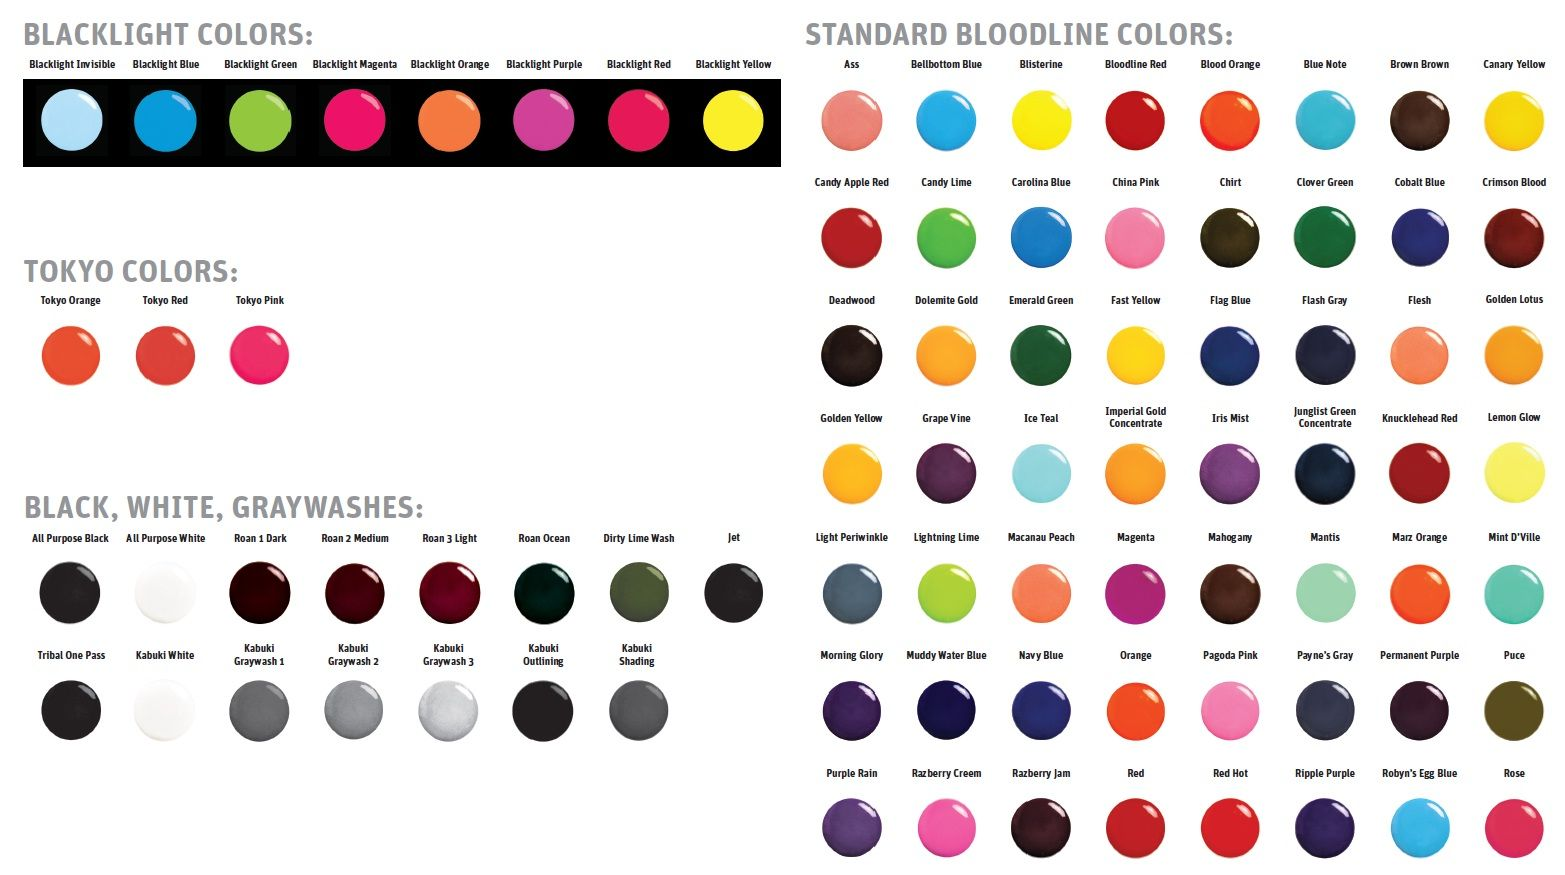 Tattoo Ink Colors >> Tattoo Color Chart You Need To Enable Javascript Tattoo